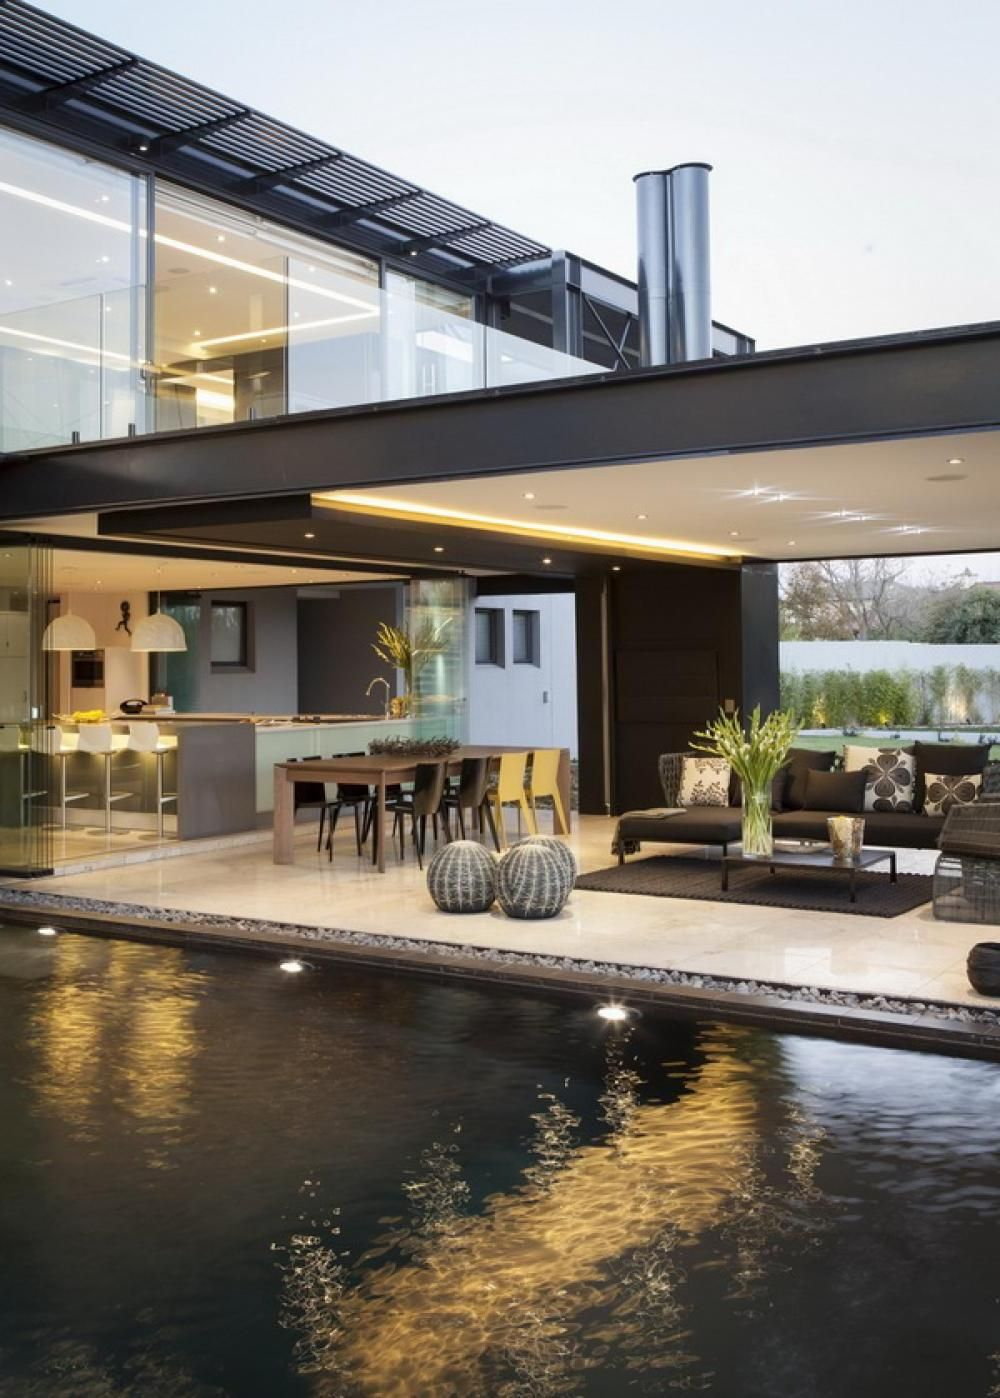 18 Amazing Contemporary Home Exterior Design Ideas: Modern Outdoor Living Room With Swimming Pool And Recessed Ceiling Light